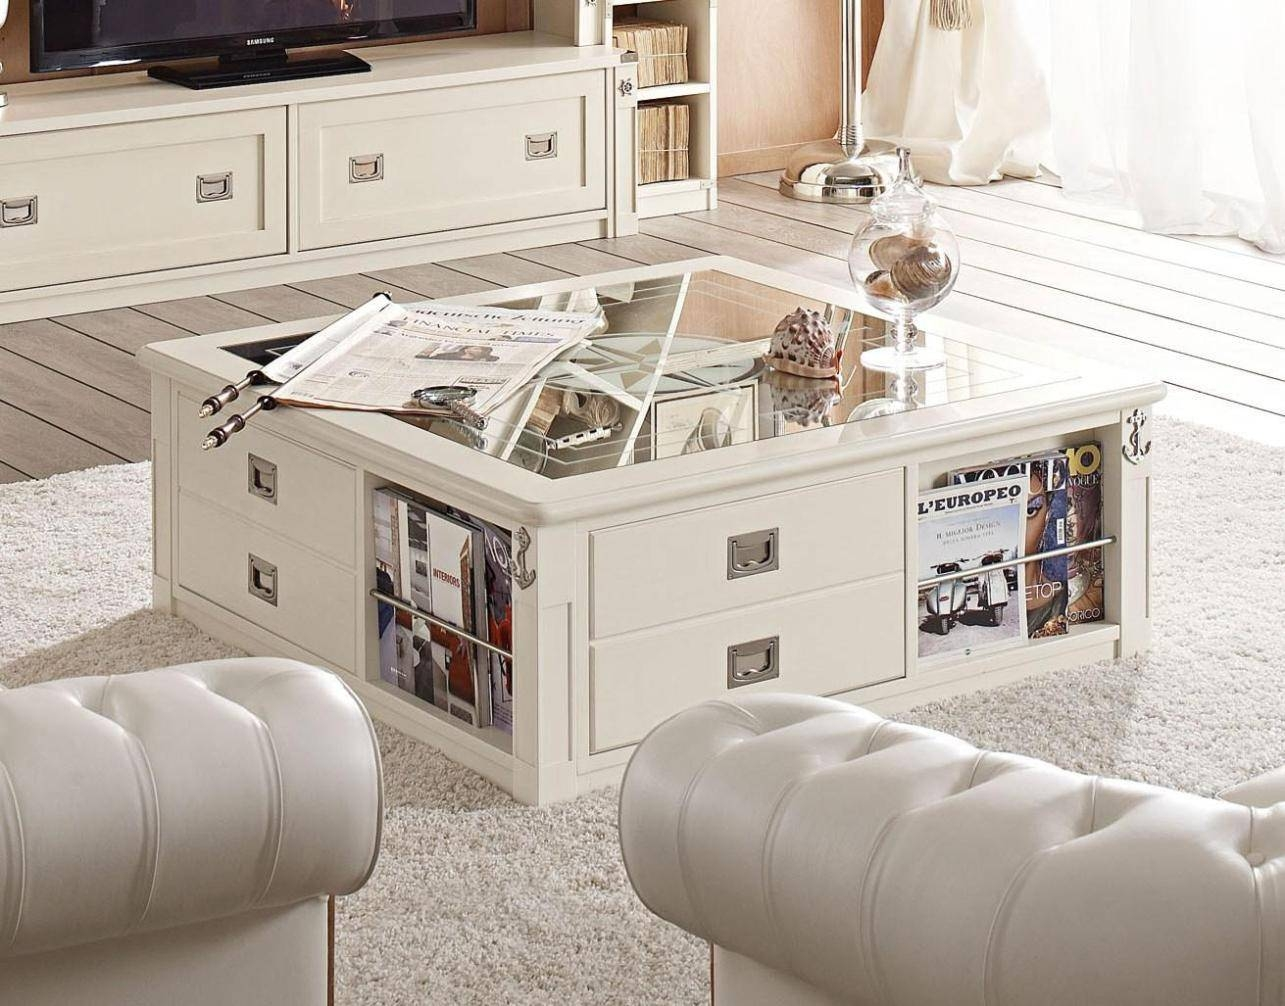 Best Design Square Coffee Table With Storage Bed & Shower pertaining to Coffee Tables With Magazine Storage (Image 6 of 30)